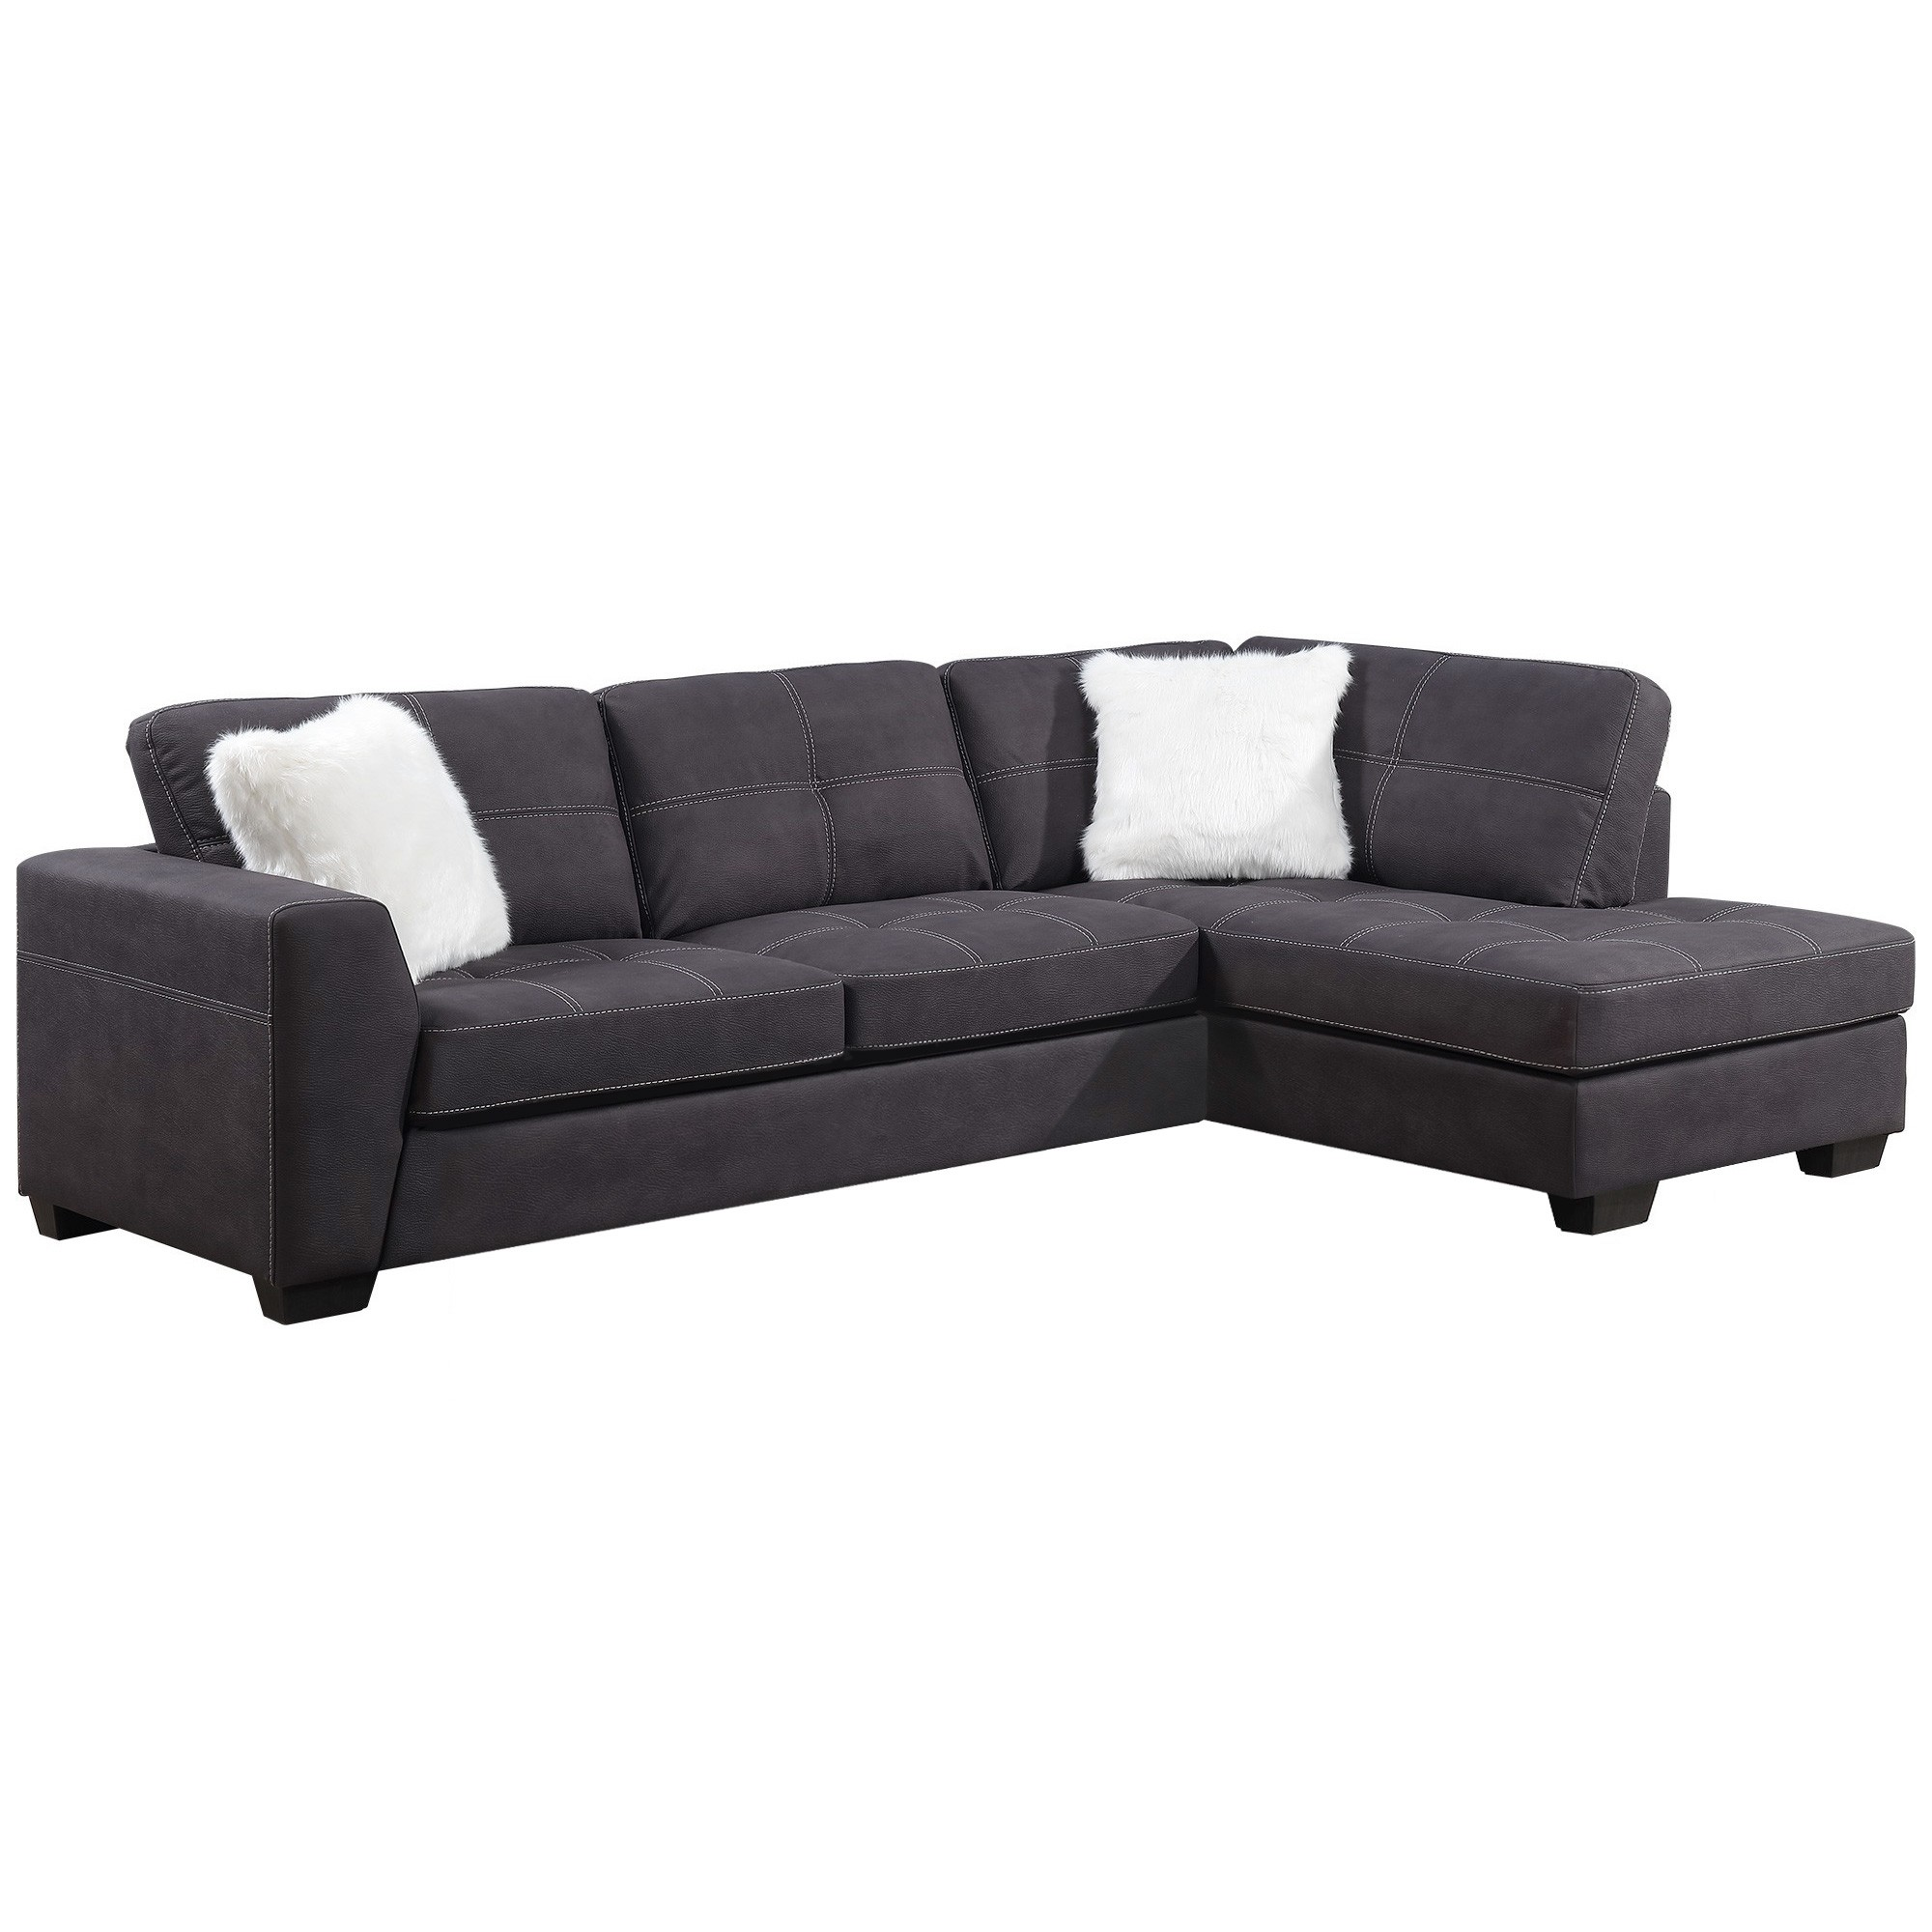 Modena Fabric 2 Seater Corner Lounge with Right Hand Facing Chaise